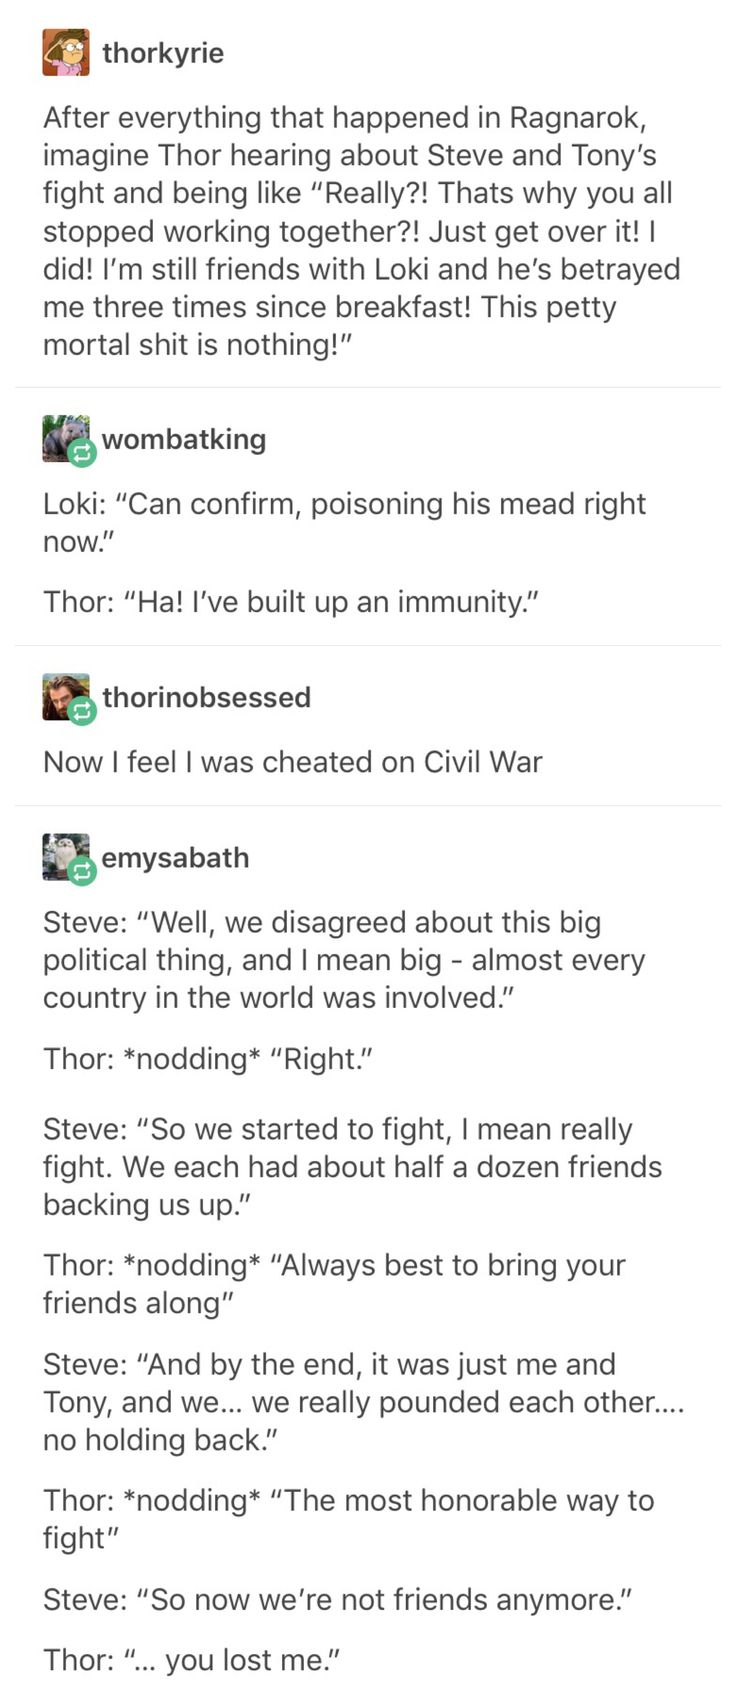 I can totally see Chris Hemsworth saying that with that cock grin on his face and Tom trying jot to laugh at the sheer idiocy of his brother, even tho he thinks the same way Steve does sometimes.